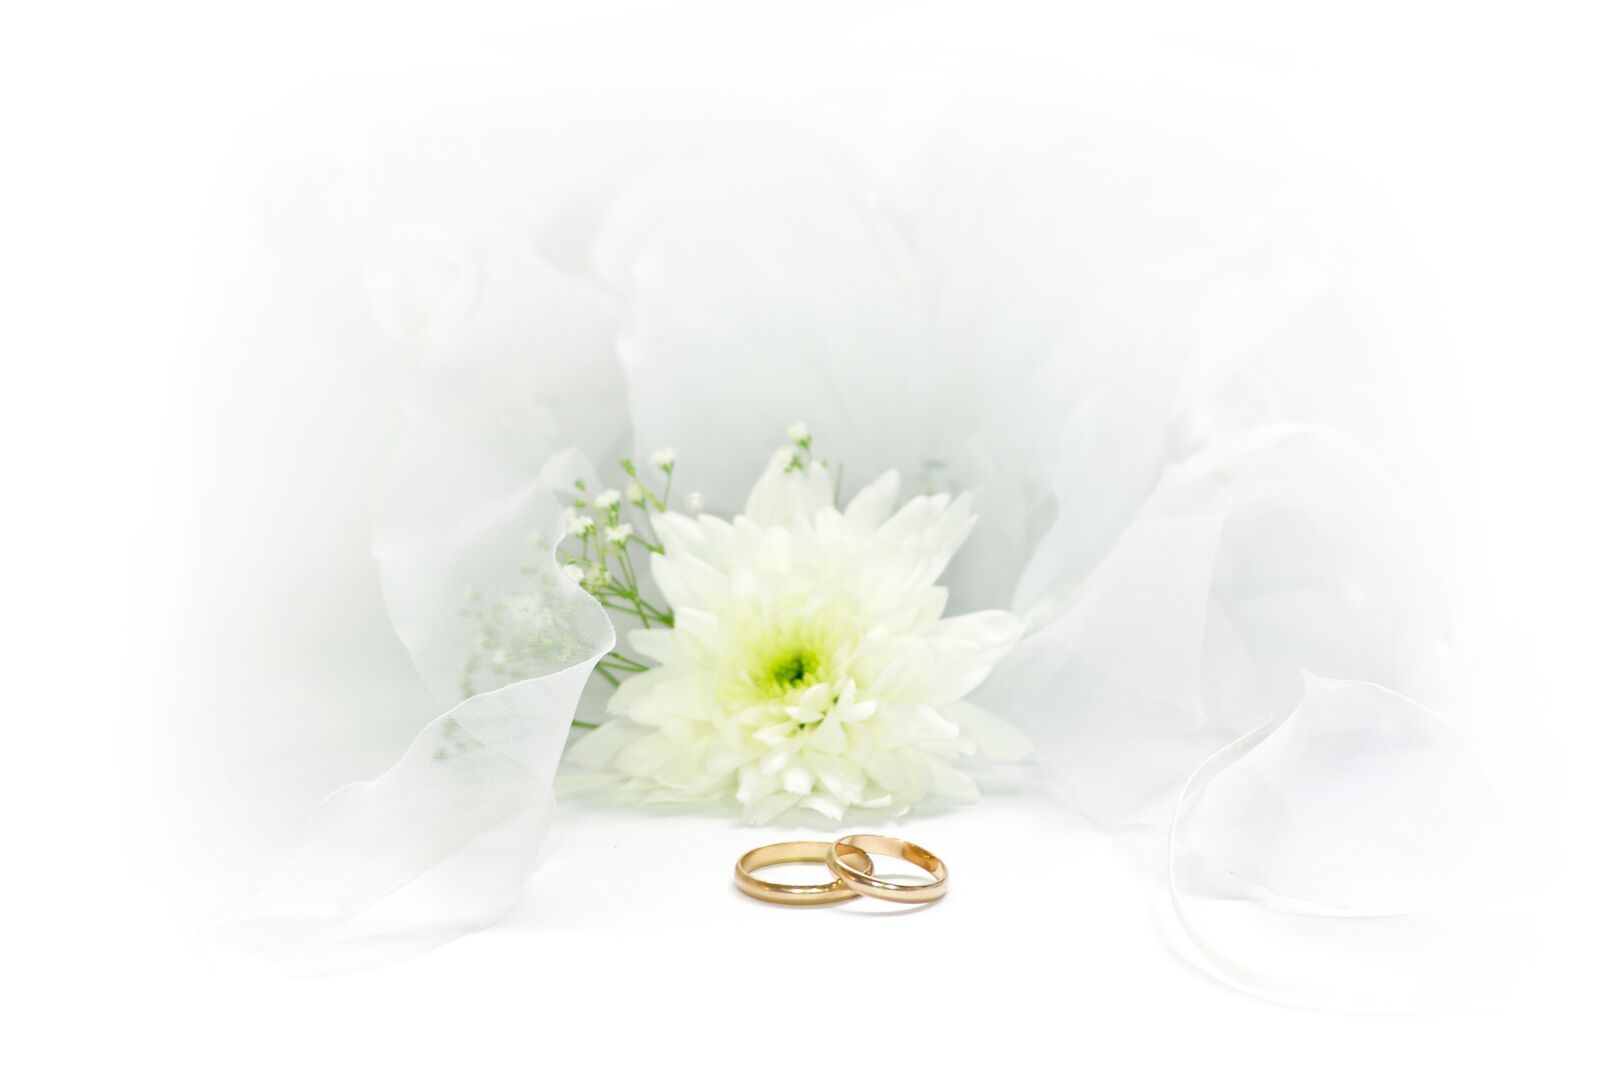 """Pentax K10D sample photo. """"Wedding, rings, marry"""" photography"""